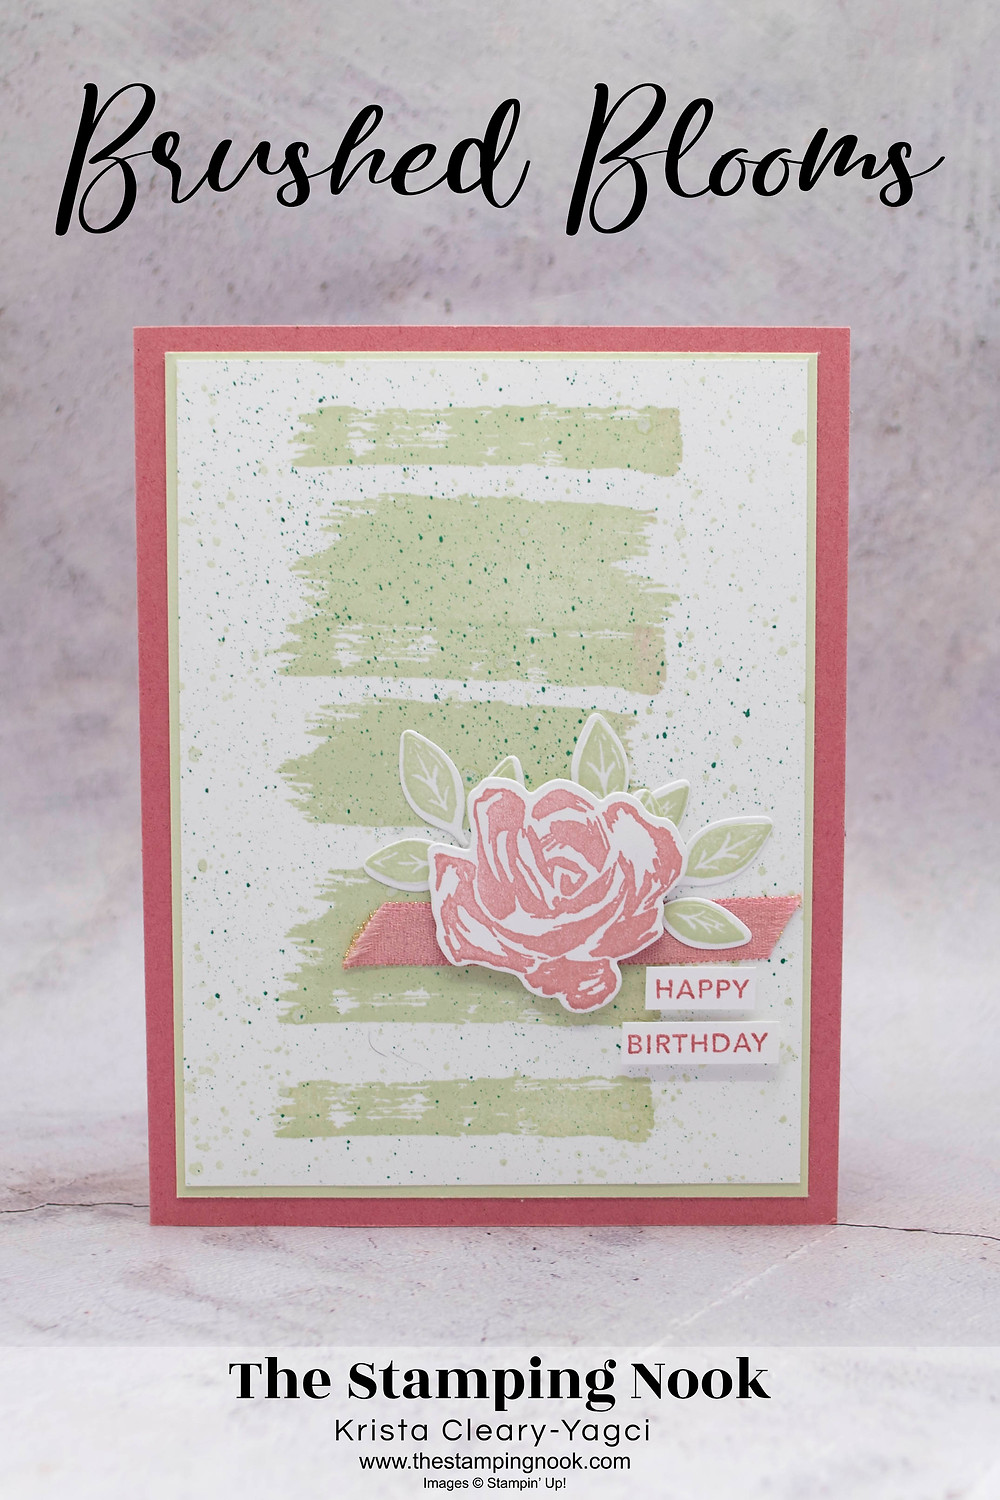 Stampin' Up! Brushed Blooms Card Ideas - Birthday Cards - The Stamping Nook - Krista-Cleary-Yagci